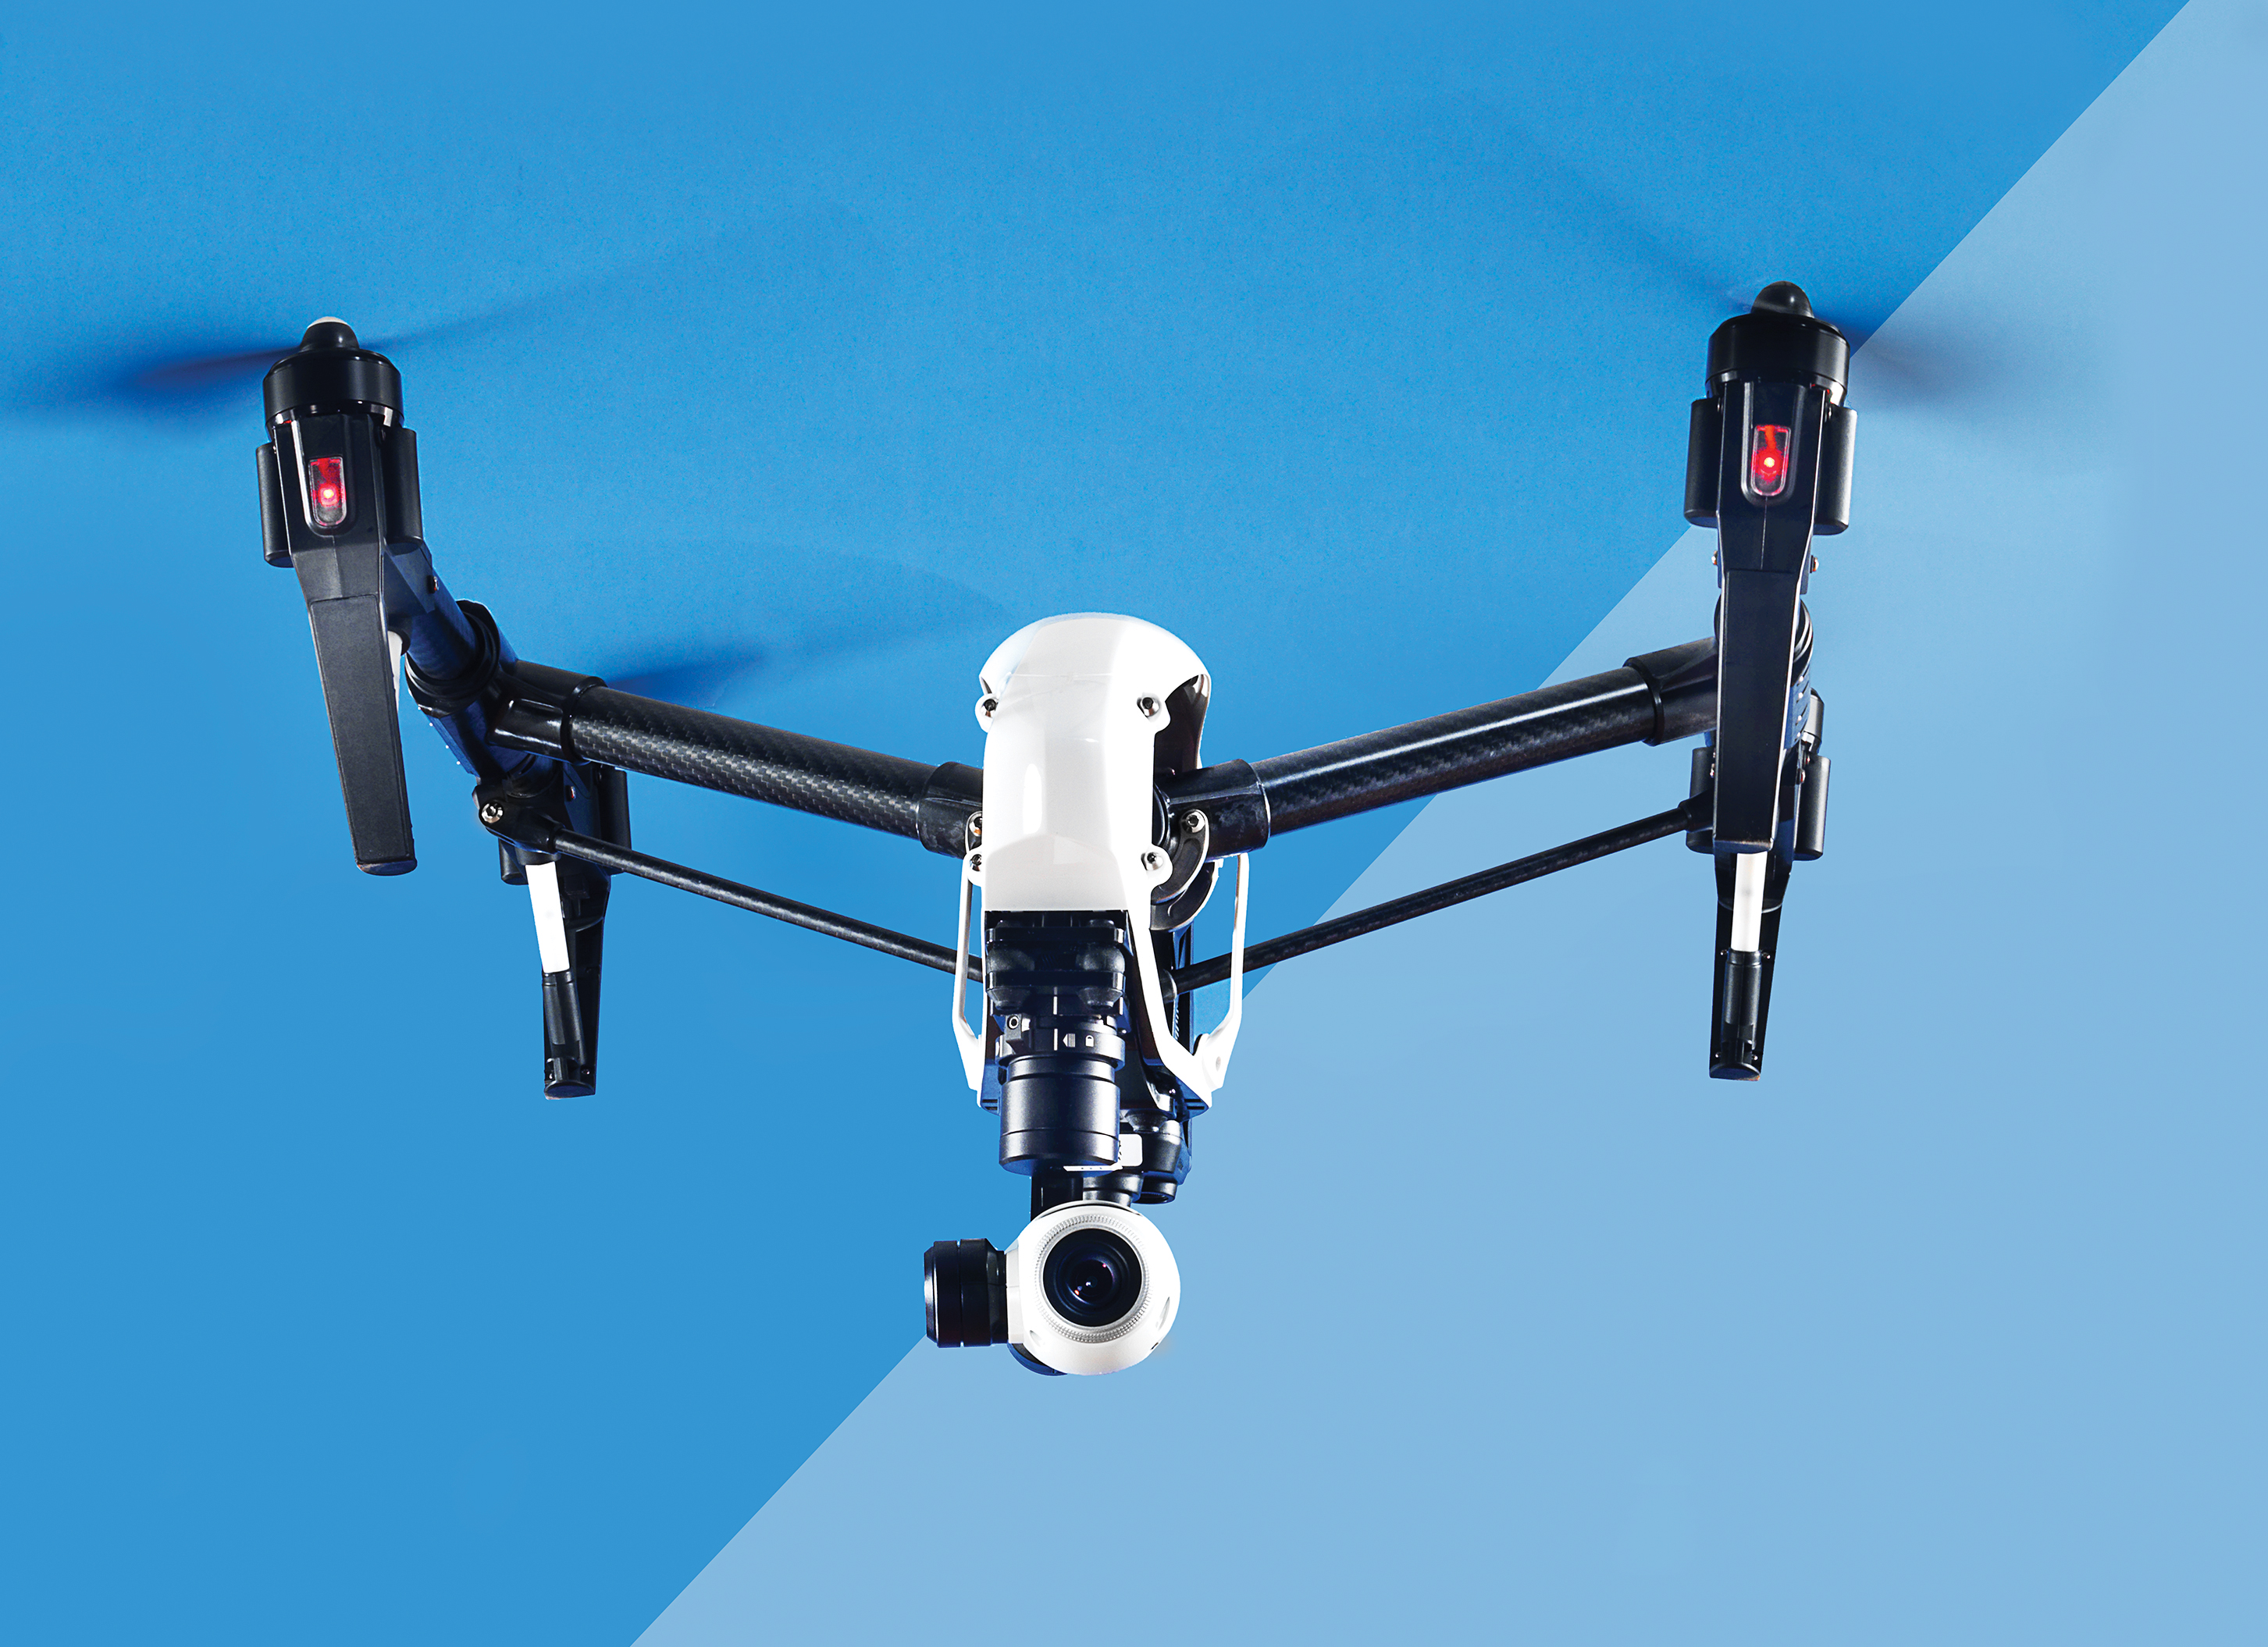 The Best Drone For Aspiring Filmmakers